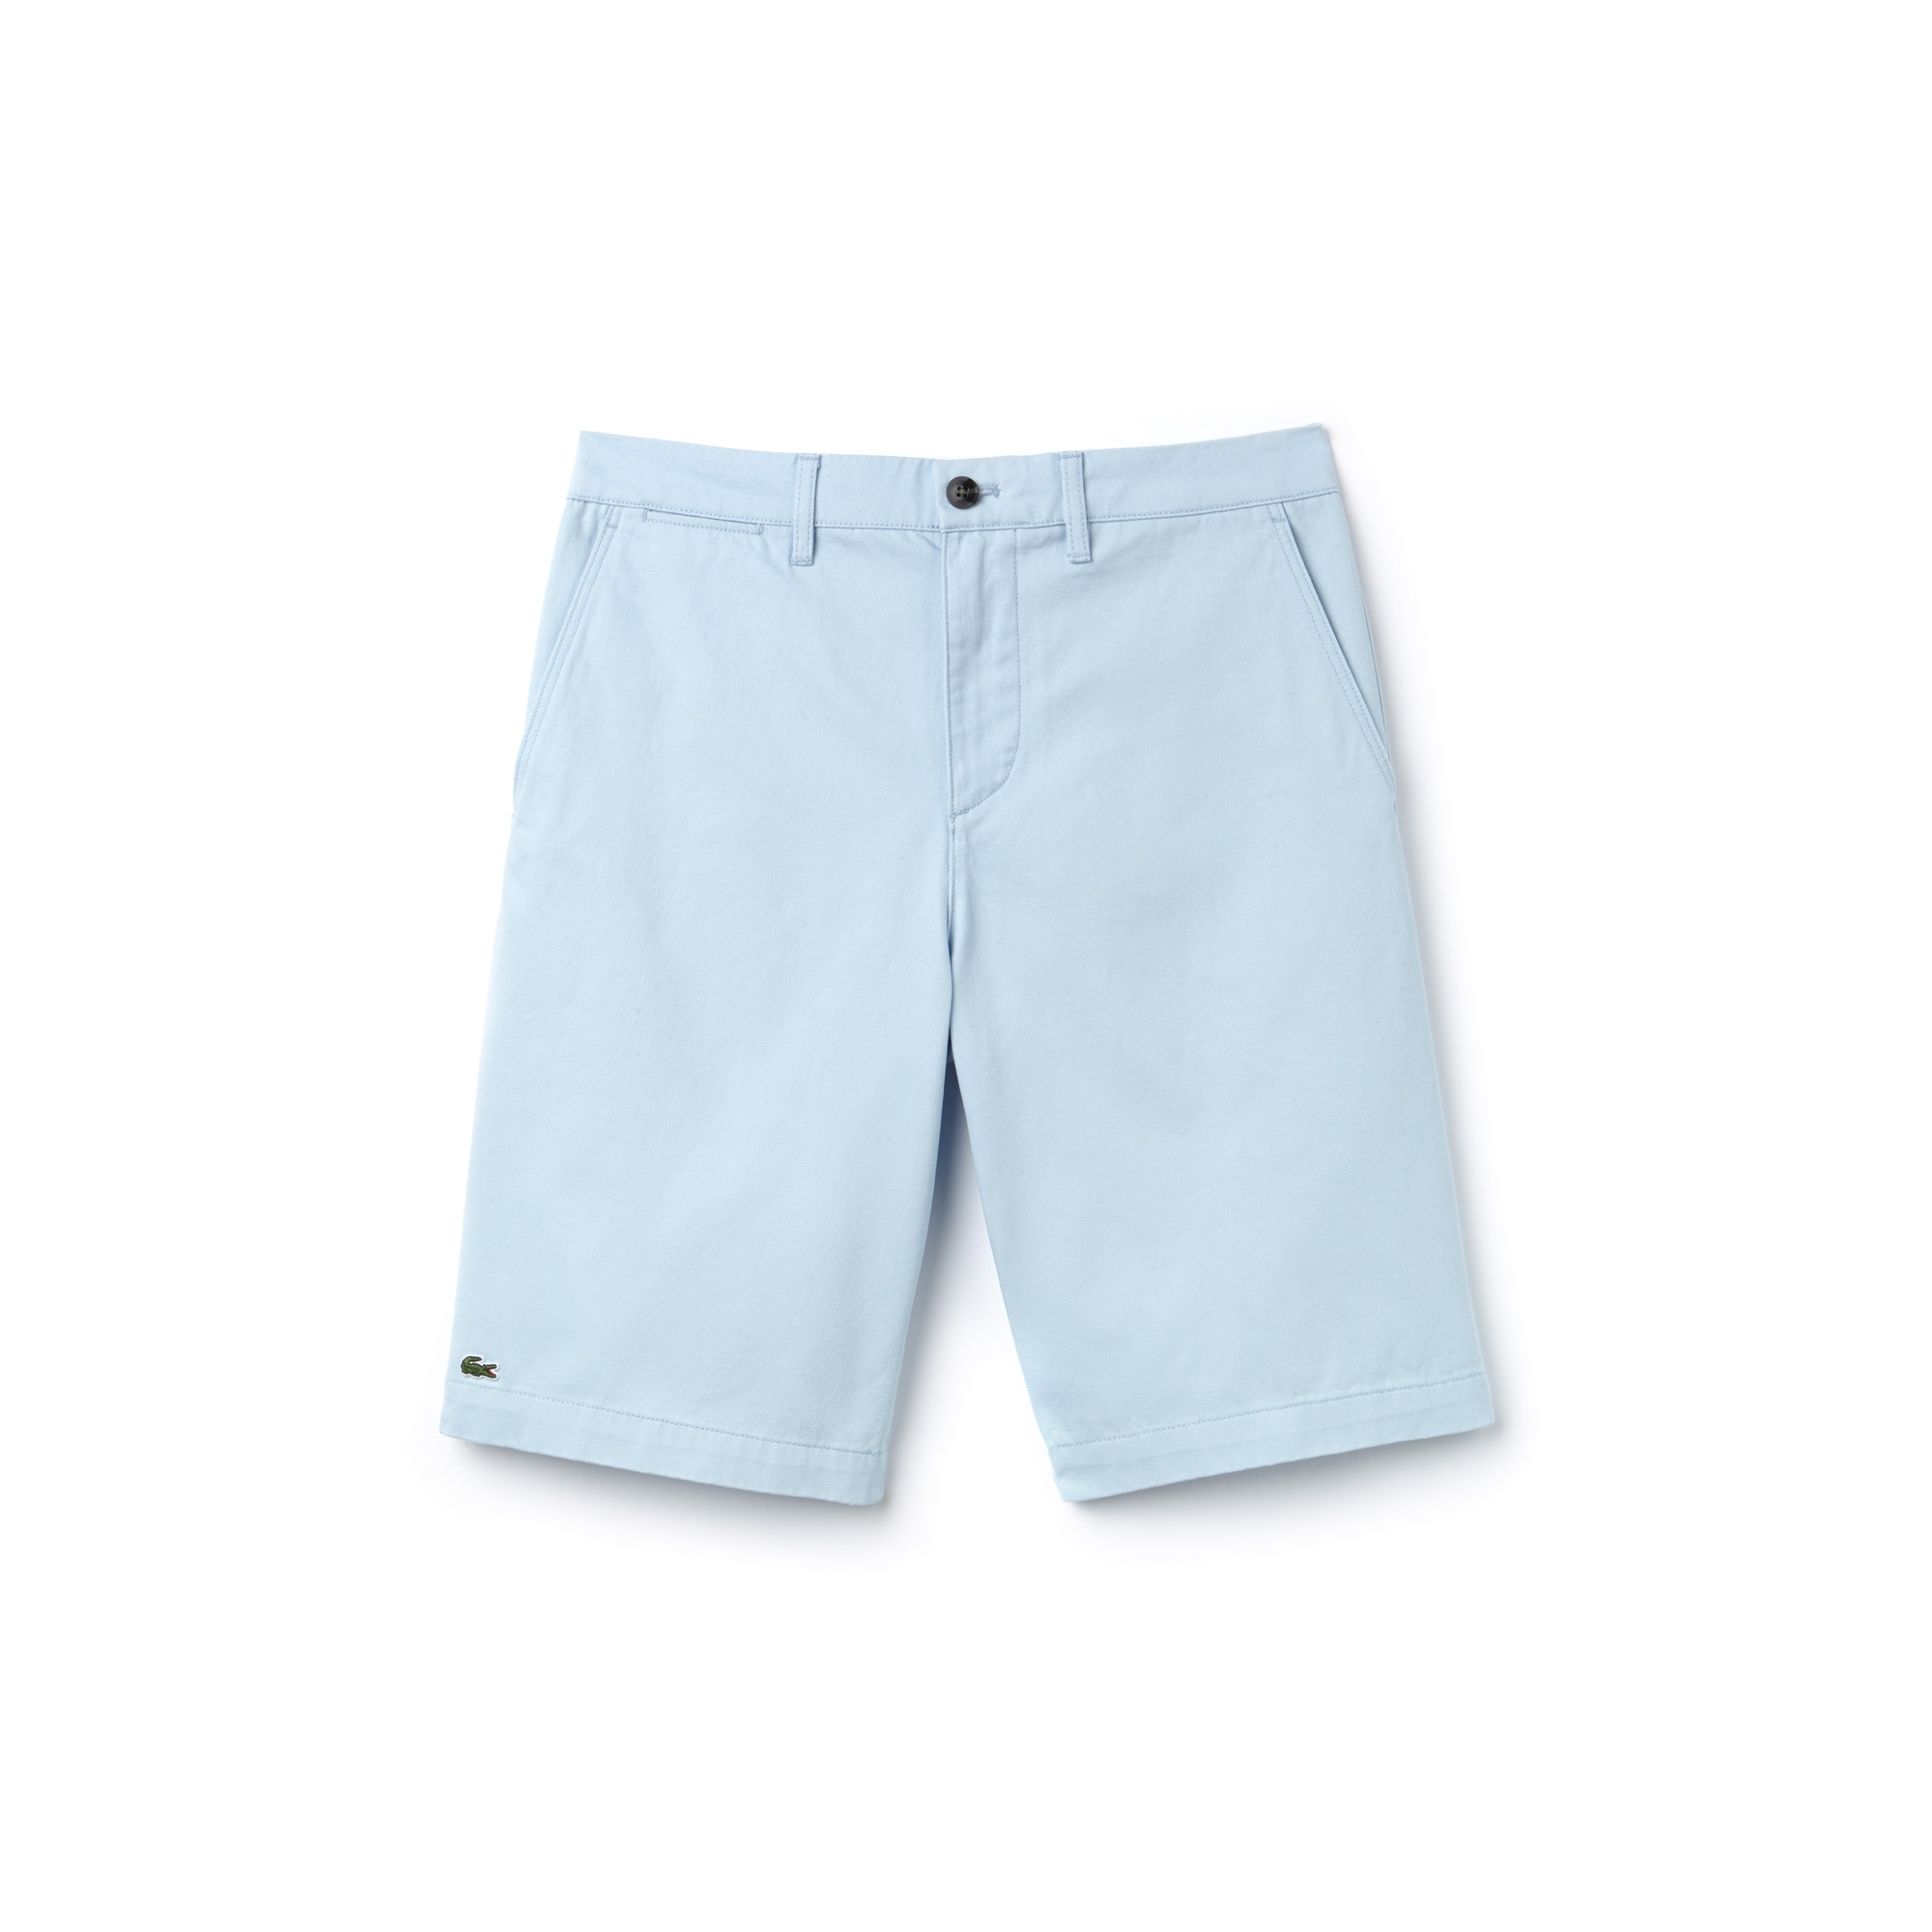 라코스테 반바지 Lacoste Mens Regular Fit Bermuda Shorts,rill